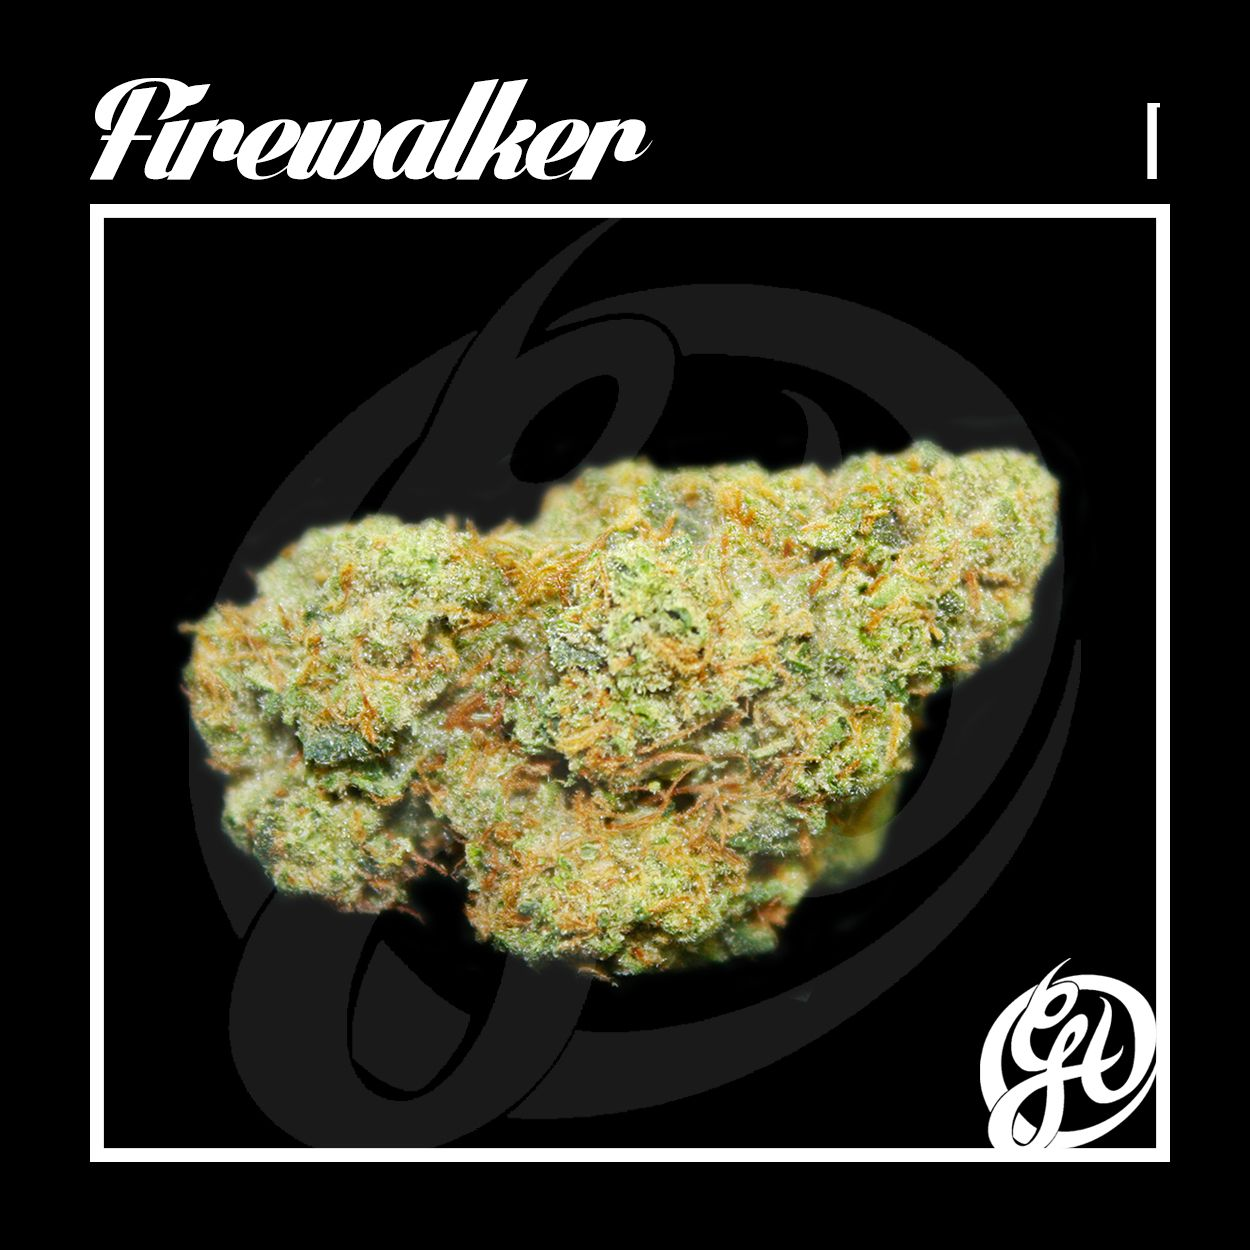 Firewalker just blazed its way in, and its lookin' HOT! This Indica is definitely a strain with a heavy high. Perfect for anybody who needs to decompress and relax. Insomnia is no match for the Firewalker. Come in and check it out. Only at the #GreenhouseHC #greenhouseherbalcenter #mmj #medicalmarijuana #thc #cbd #indica #sativa #bud #greens #nugs #maryjane #ganja #smoke #toke #puffpuffpass #cannabiscommunity #highsociety #instahigh #instaweed #legalize #lifted #hollywood #dispensary…